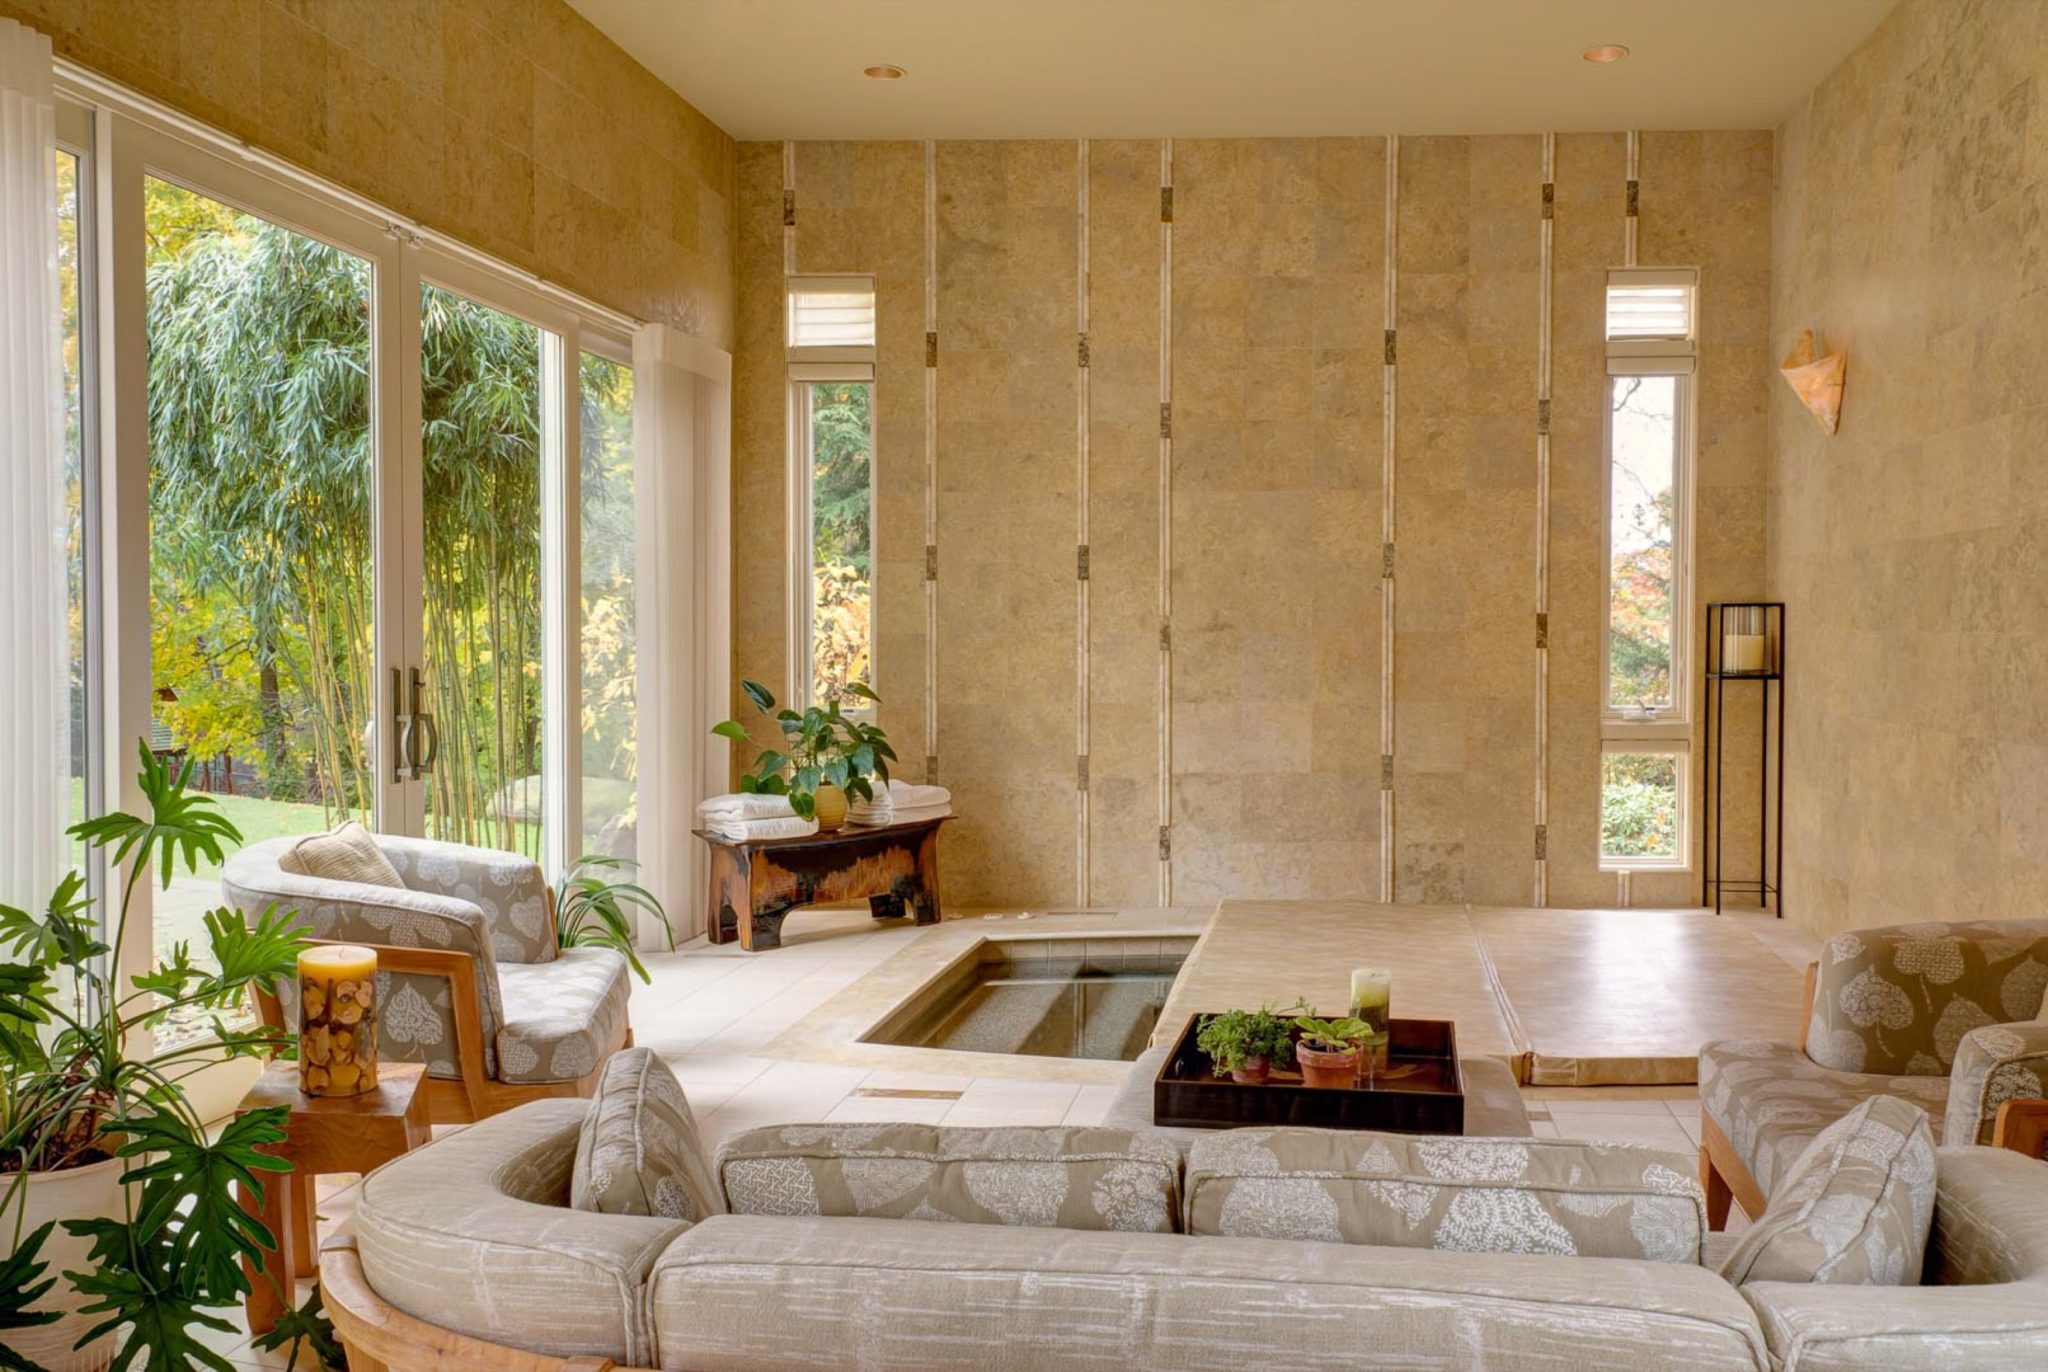 Custom designed stone walls with vertical inset accents of tile and stone by Susan Dearborn Interiors Inc.